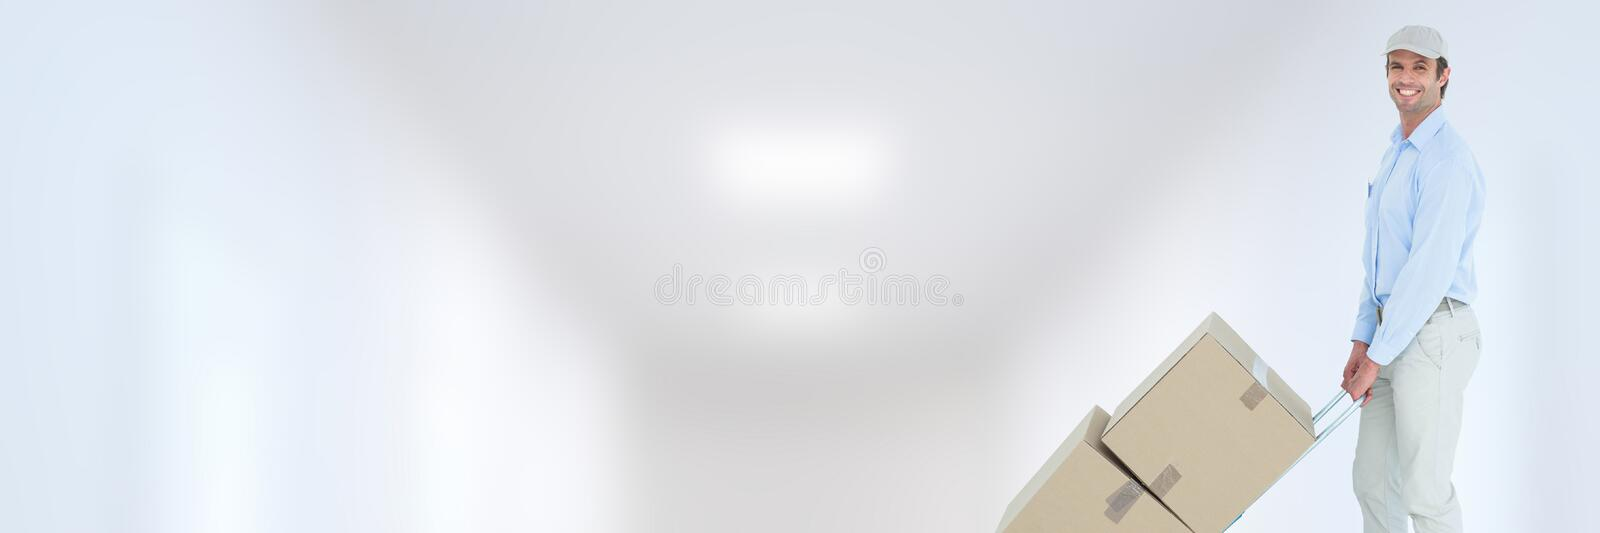 Delivery Courier with boxes in front of blurred background royalty free stock photography